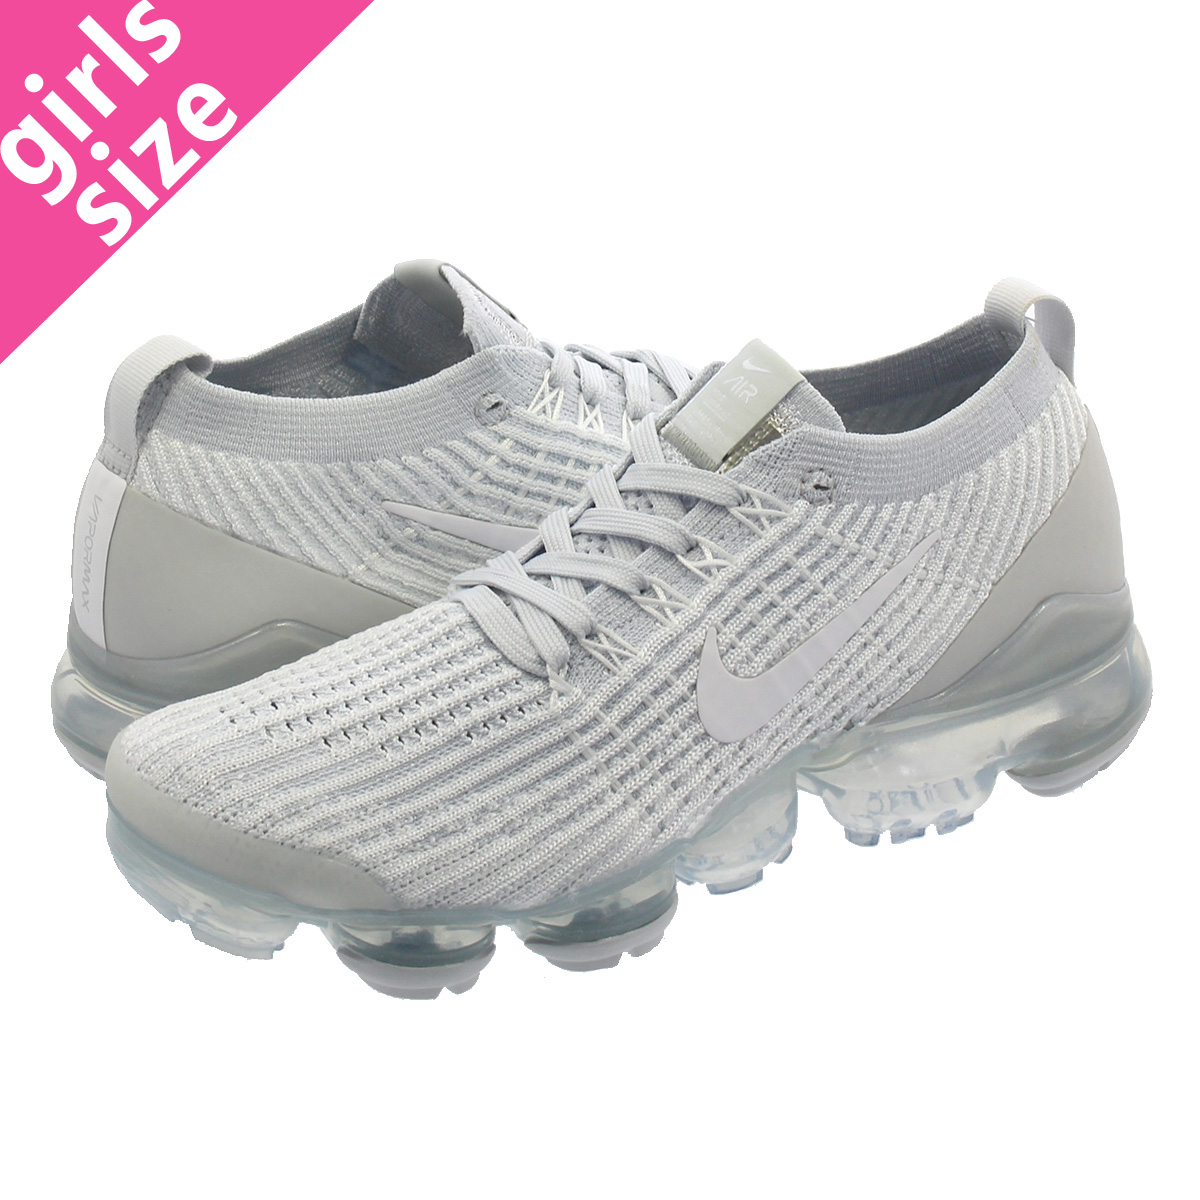 factory price 7b804 173f3 NIKE WMNS AIR VAPORMAX FLYKNIT 3 Nike women vapor max fried food knit 3  WHITE/WHITE/PURE PLATINUM/METALLIC SILVER aj6910-100